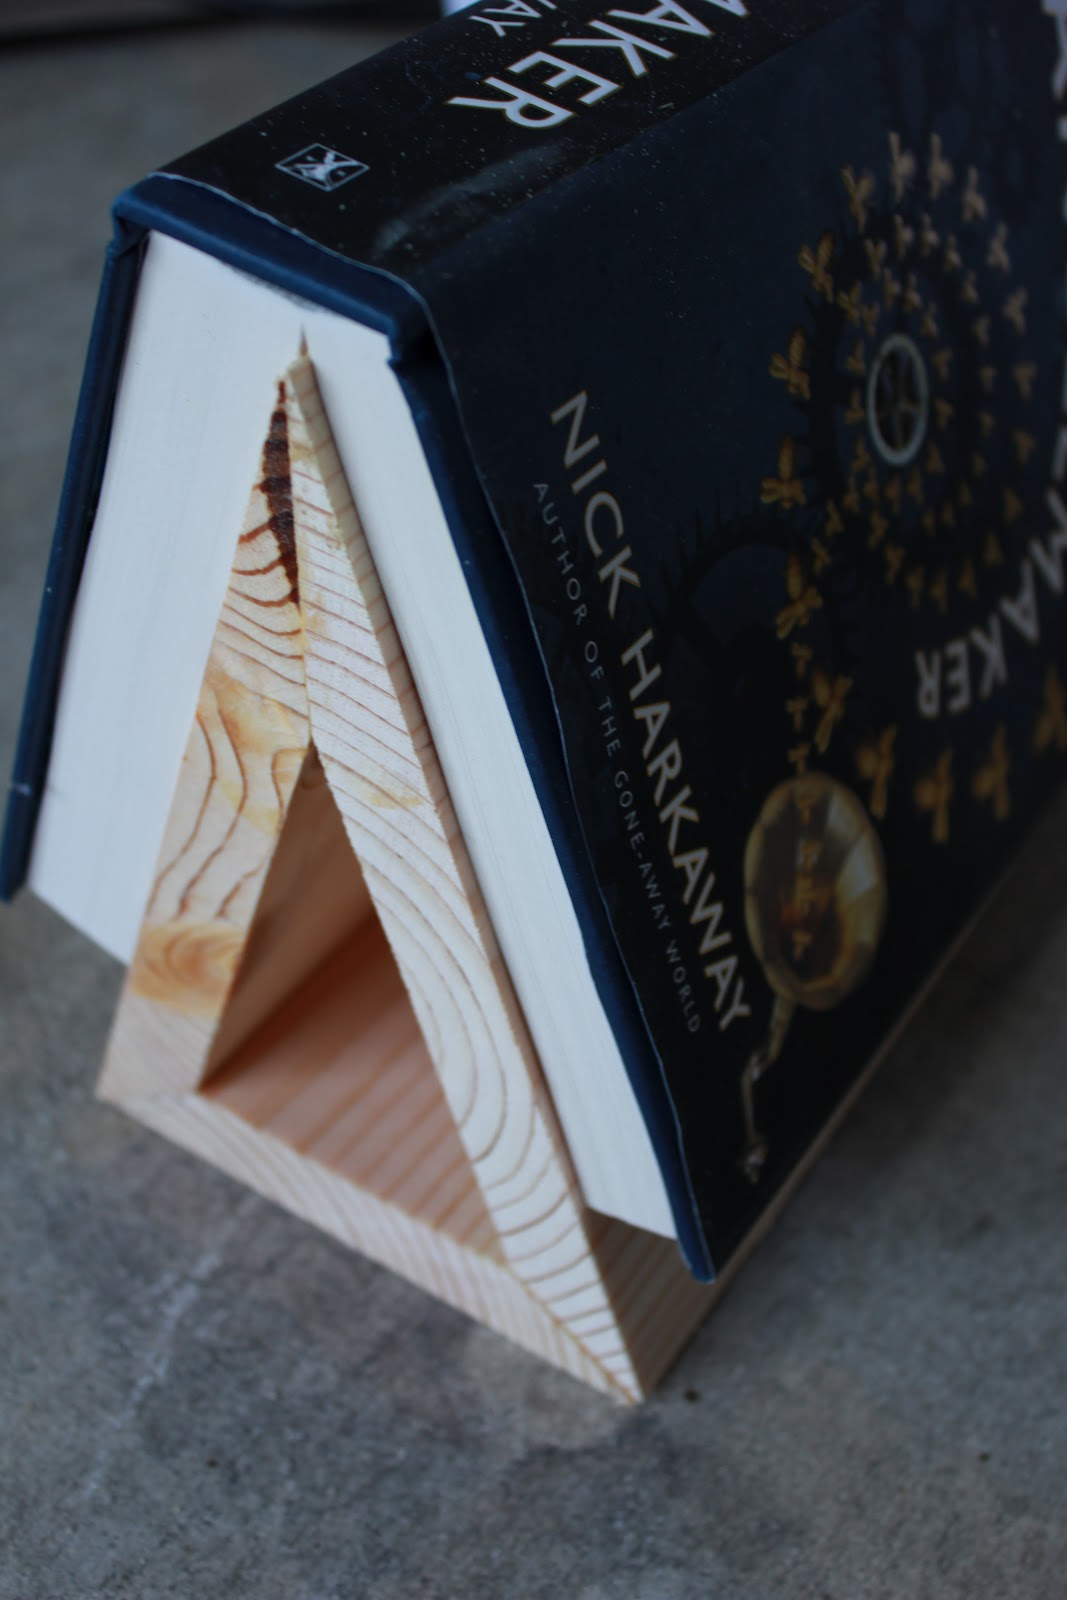 Hipholstery diy tutorial book stand for dad malvernweather Images